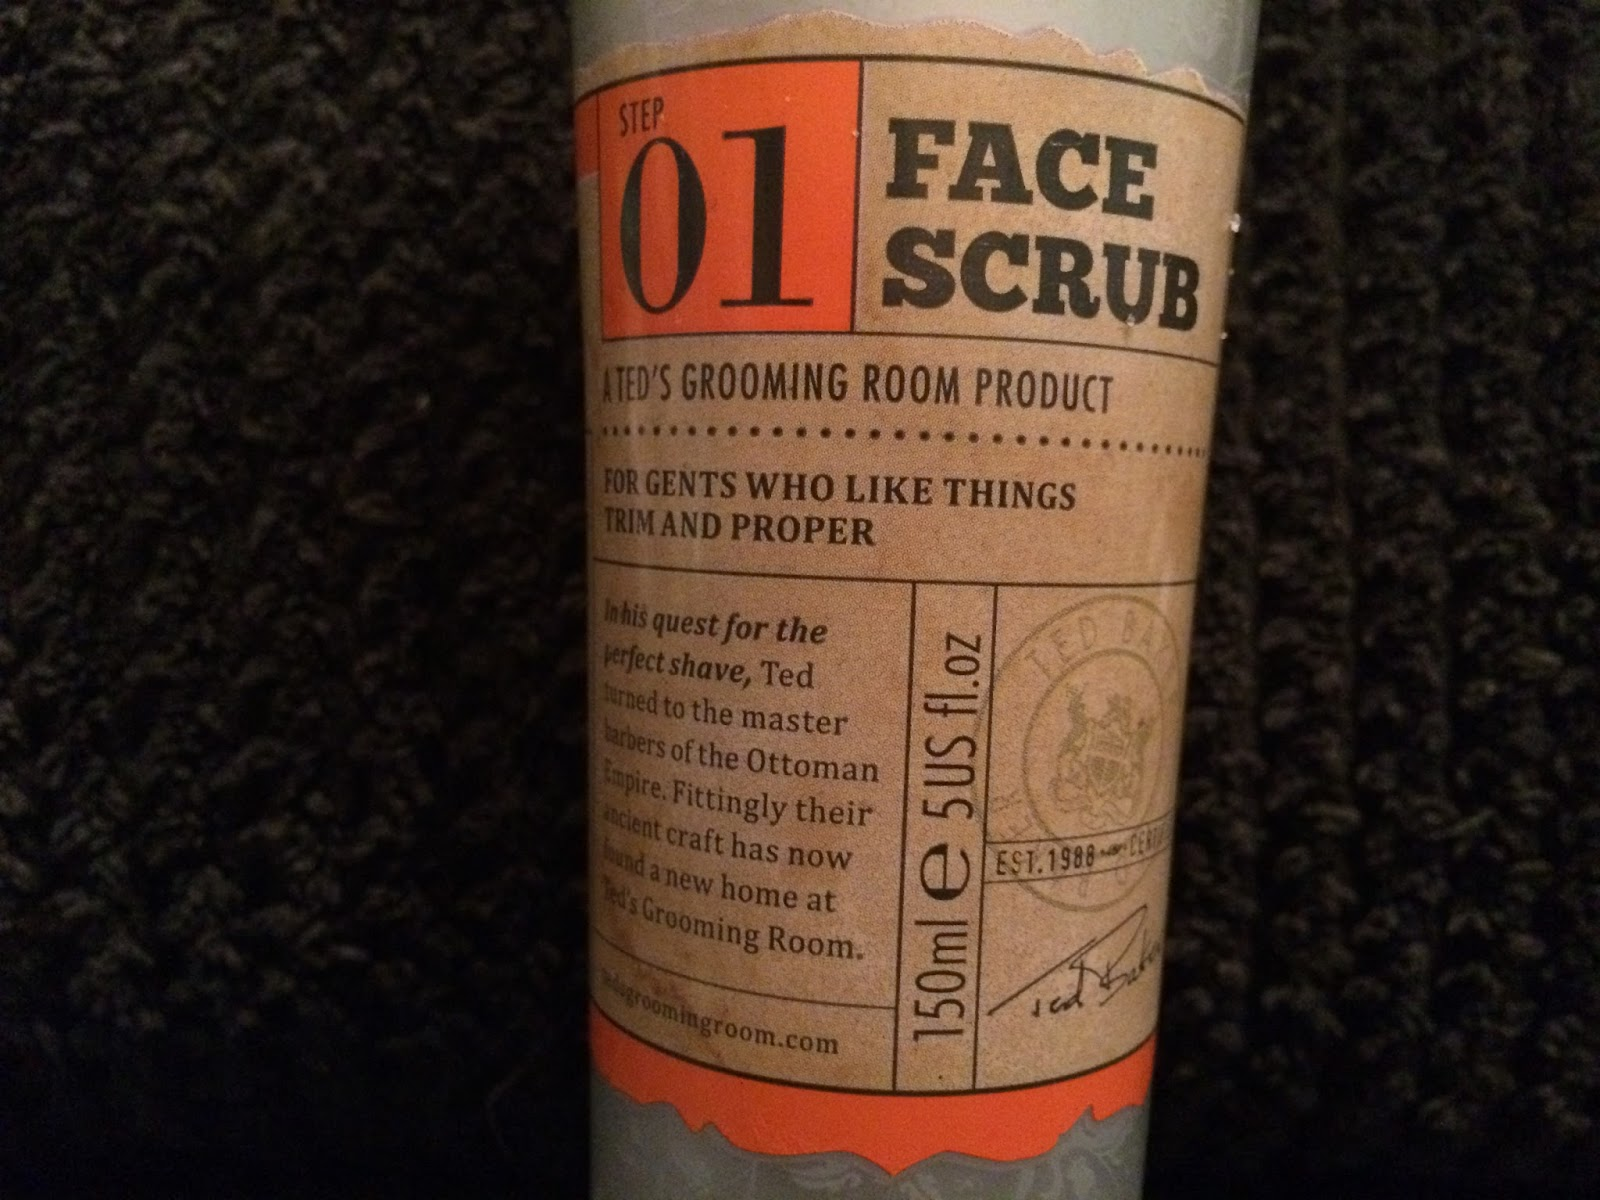 Ted's Grooming Room - Step 01 Face Scrub